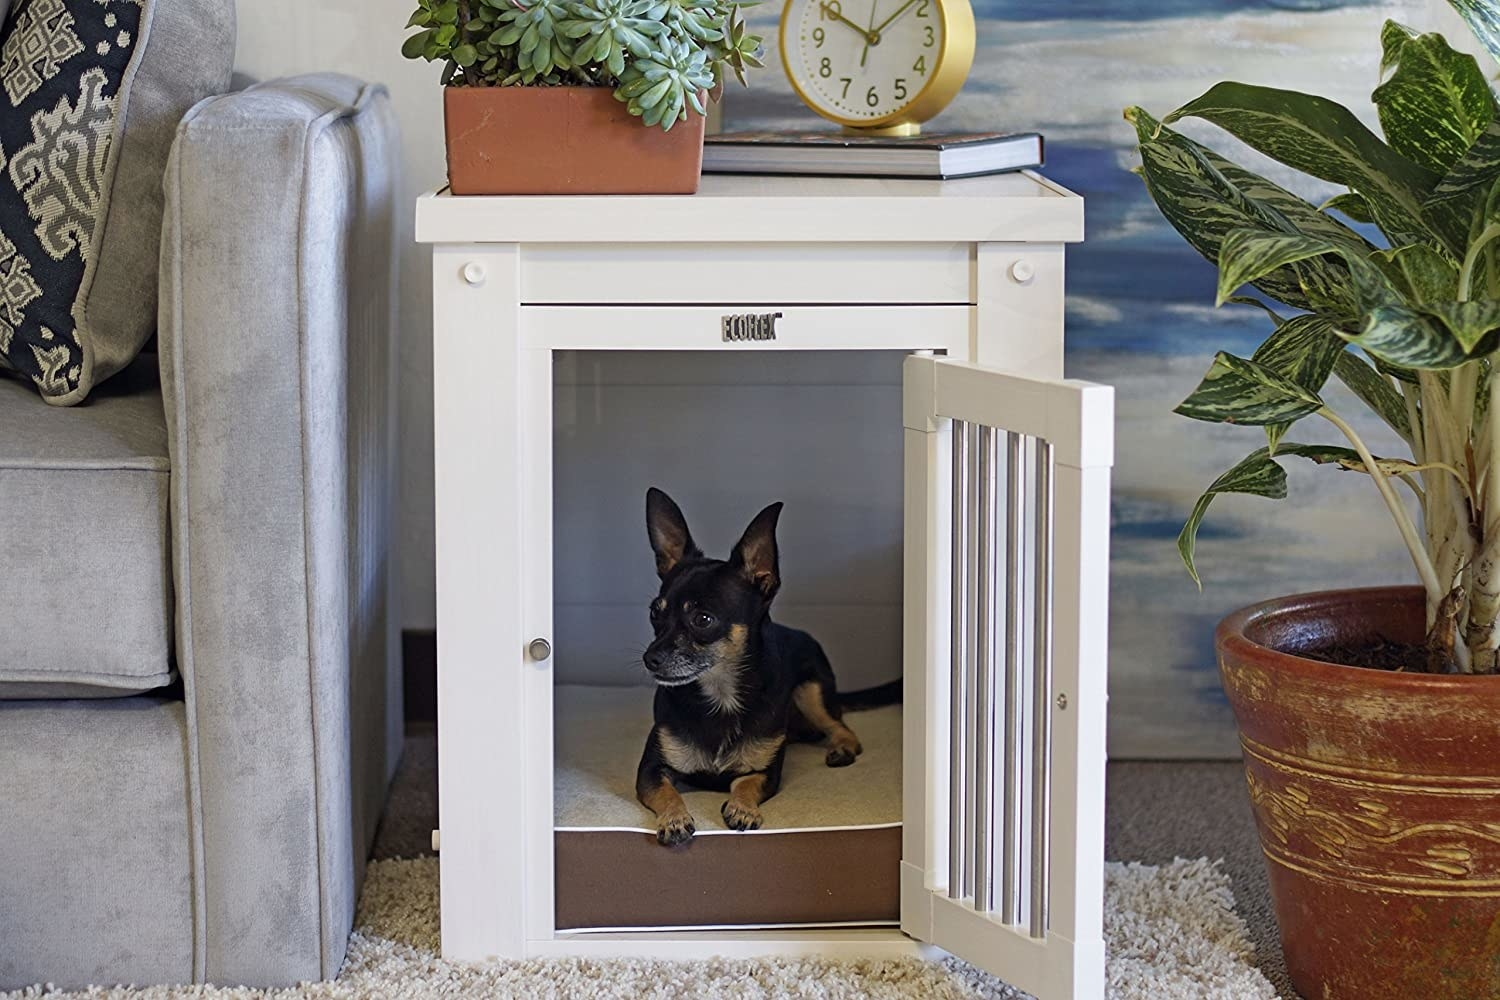 A lifestyle shot of a chiwawa laying inside of the side table crate with the door open. The table is beside a sofa and has a plant, clock, and book as decor on top.